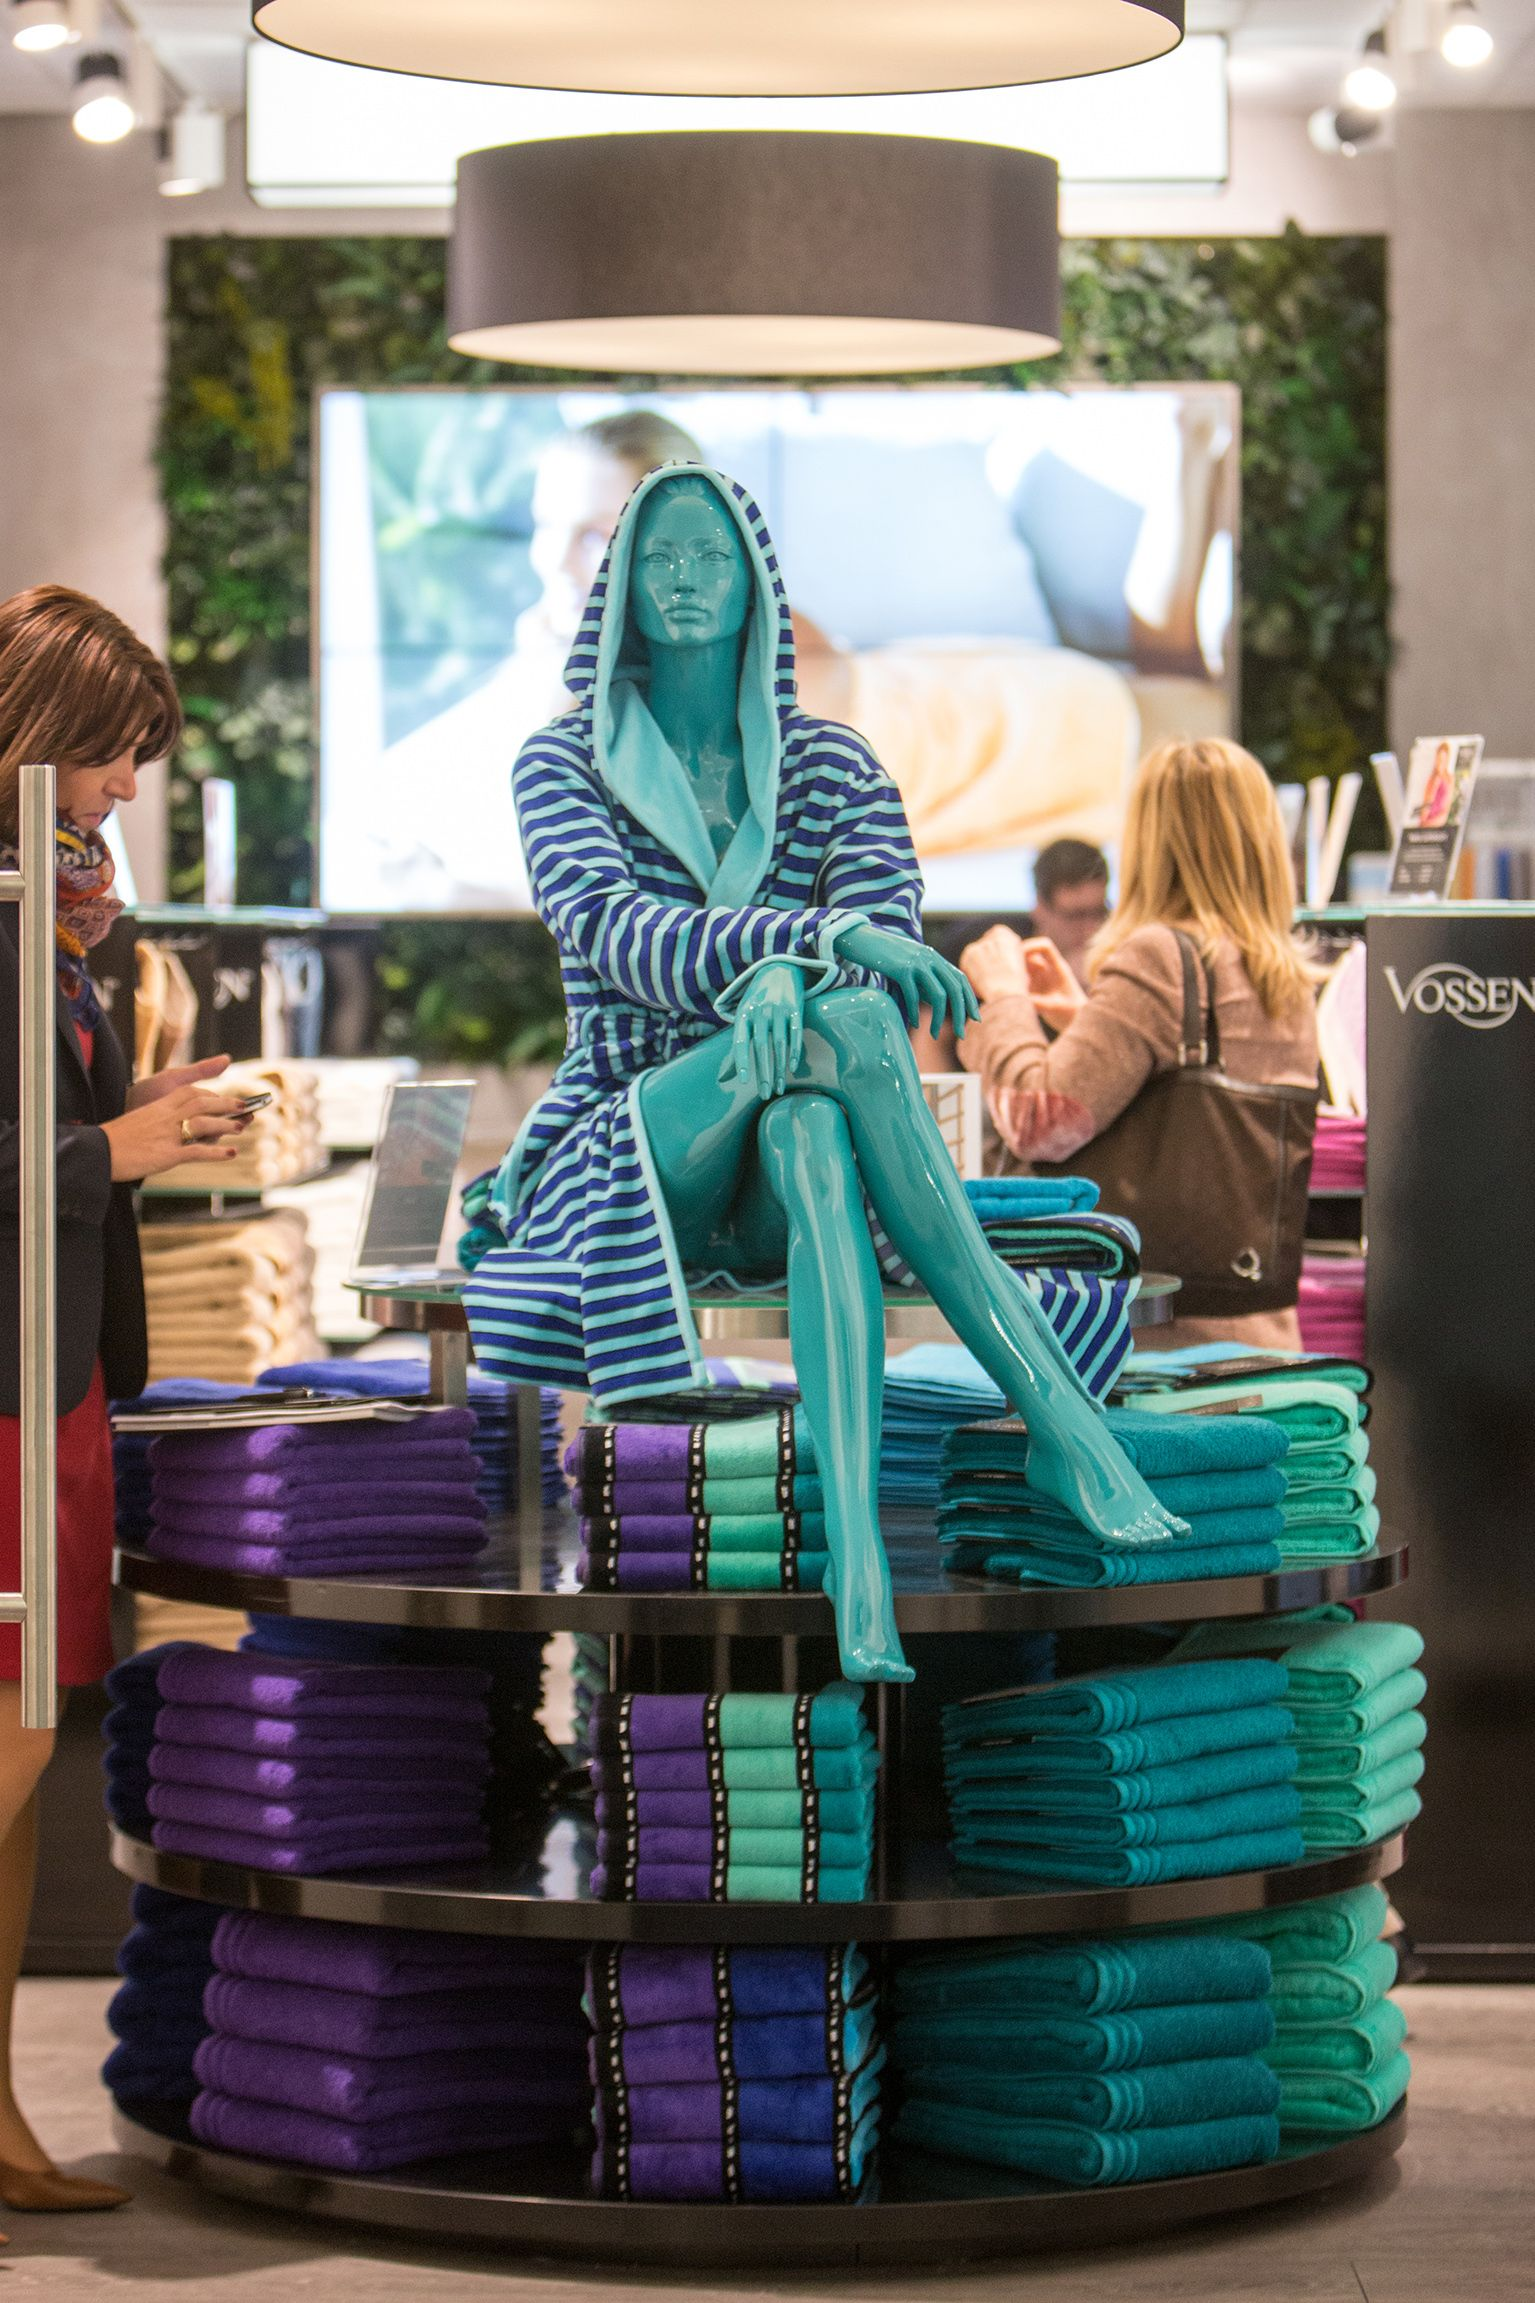 Amazing Coloured Towels In Hall 11 0 At The Stall Of Exhibitor Vossen Gmbh Co Kg Vetrine Scaffali Negozio